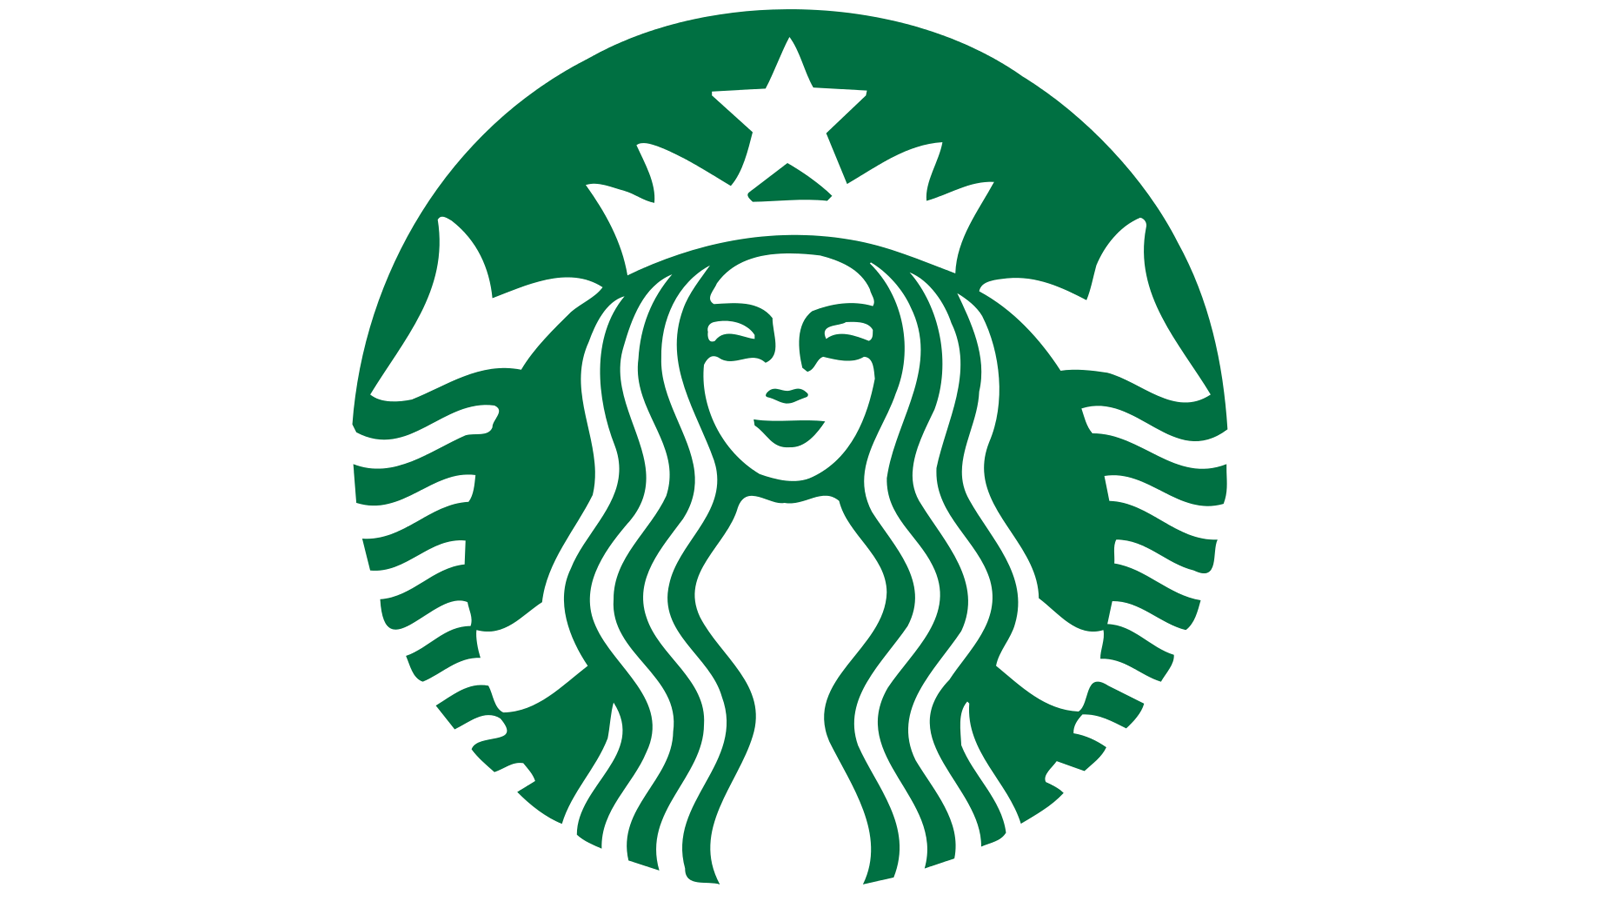 Starbucks Stands Up For Equality And Transgender Rights Human